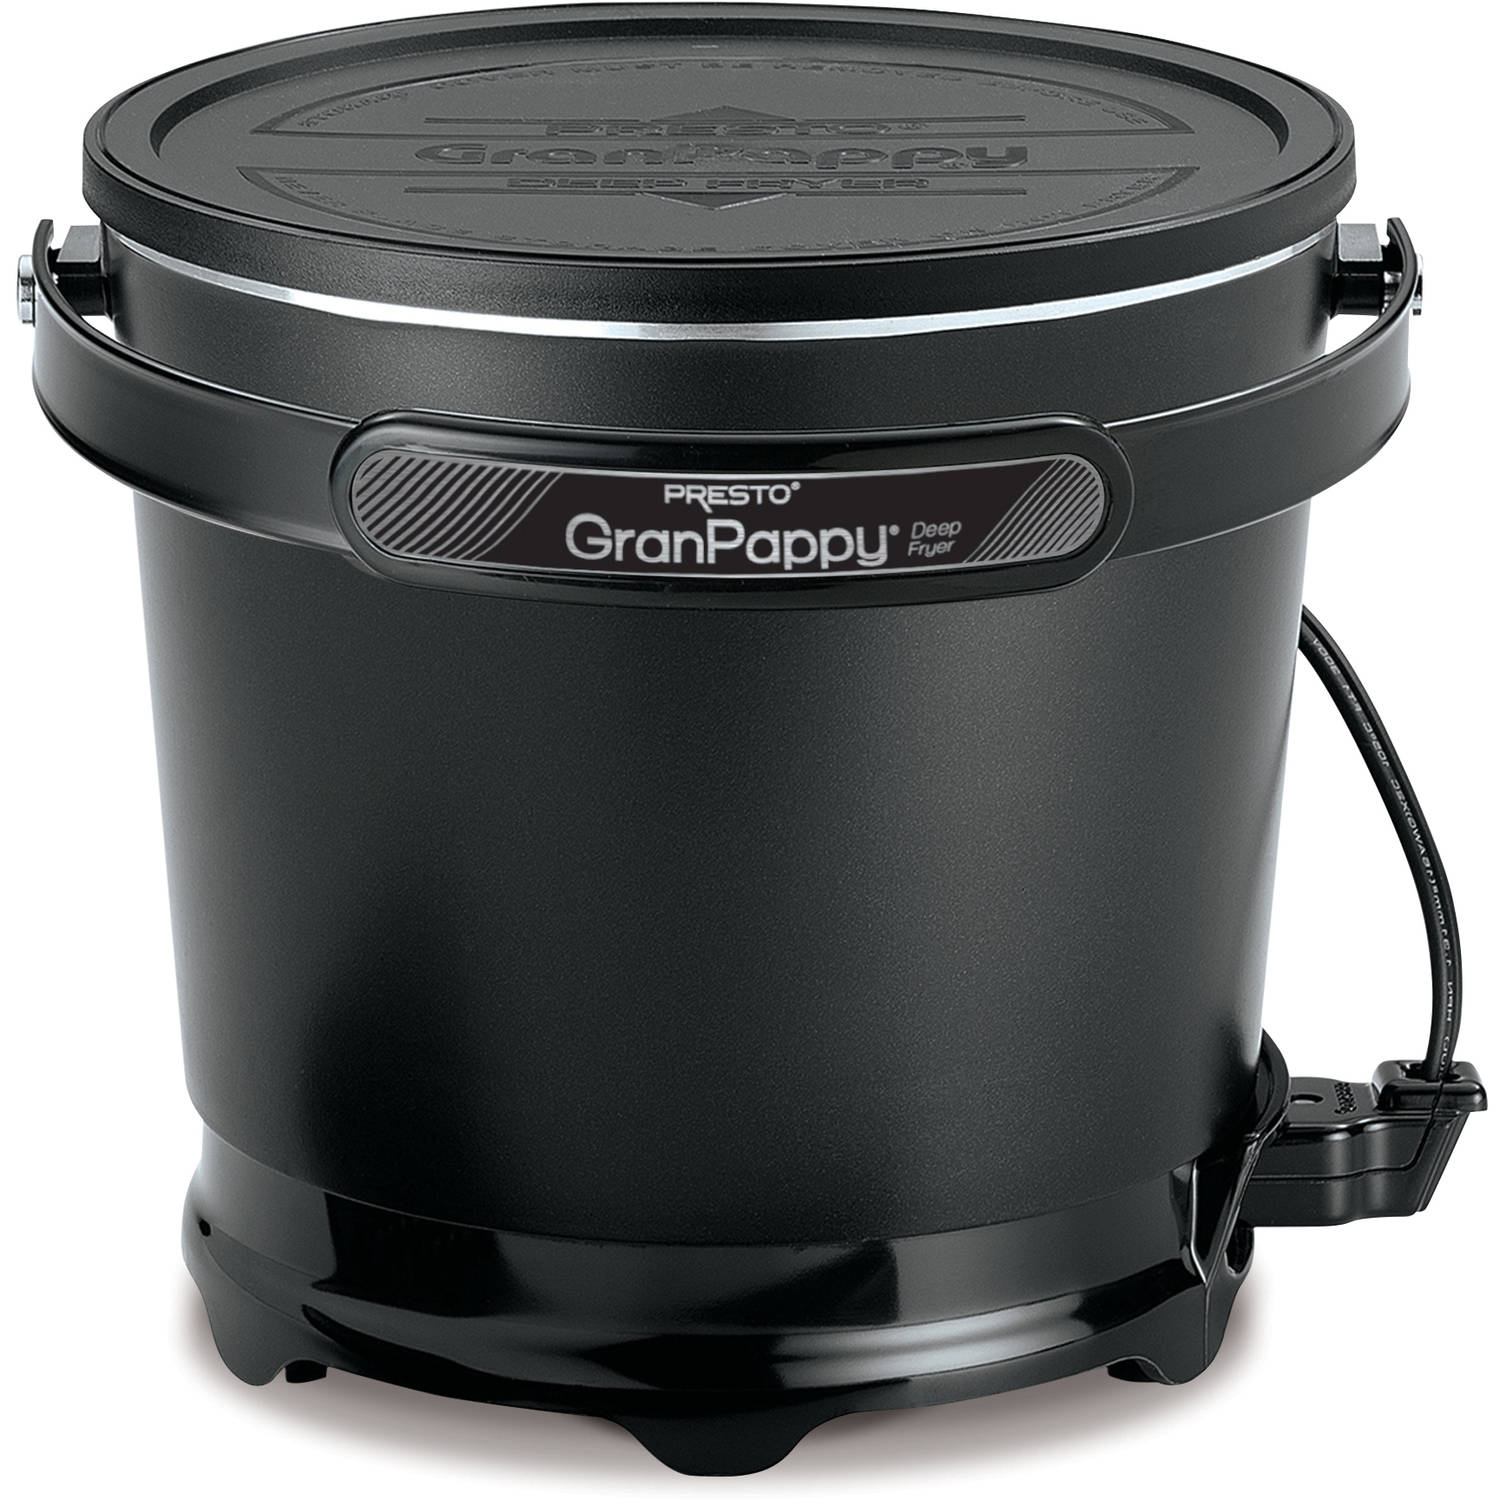 Presto GranPappy 6-Cup Deep Fryer